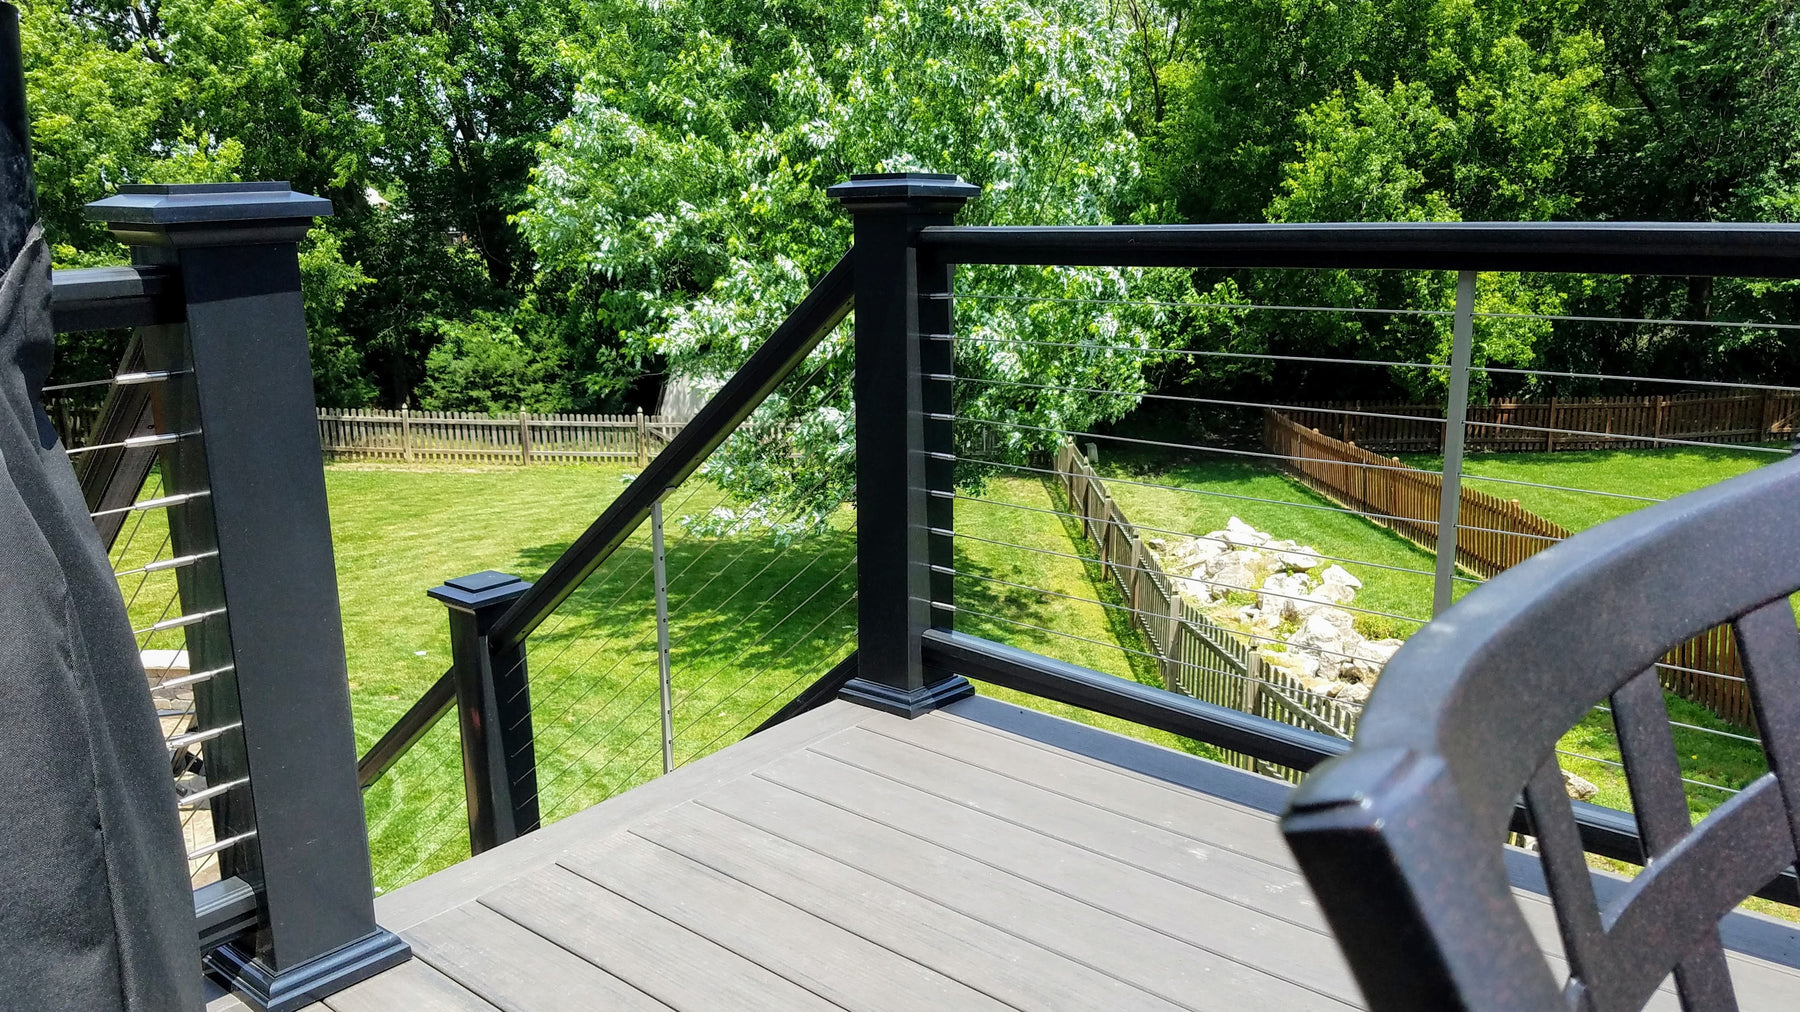 Composite Premier Rail a TimberTech Railing System with Cable infill, and Lighted Island Post Caps in Black colored railing, post sleeves, post caps, and post flairs